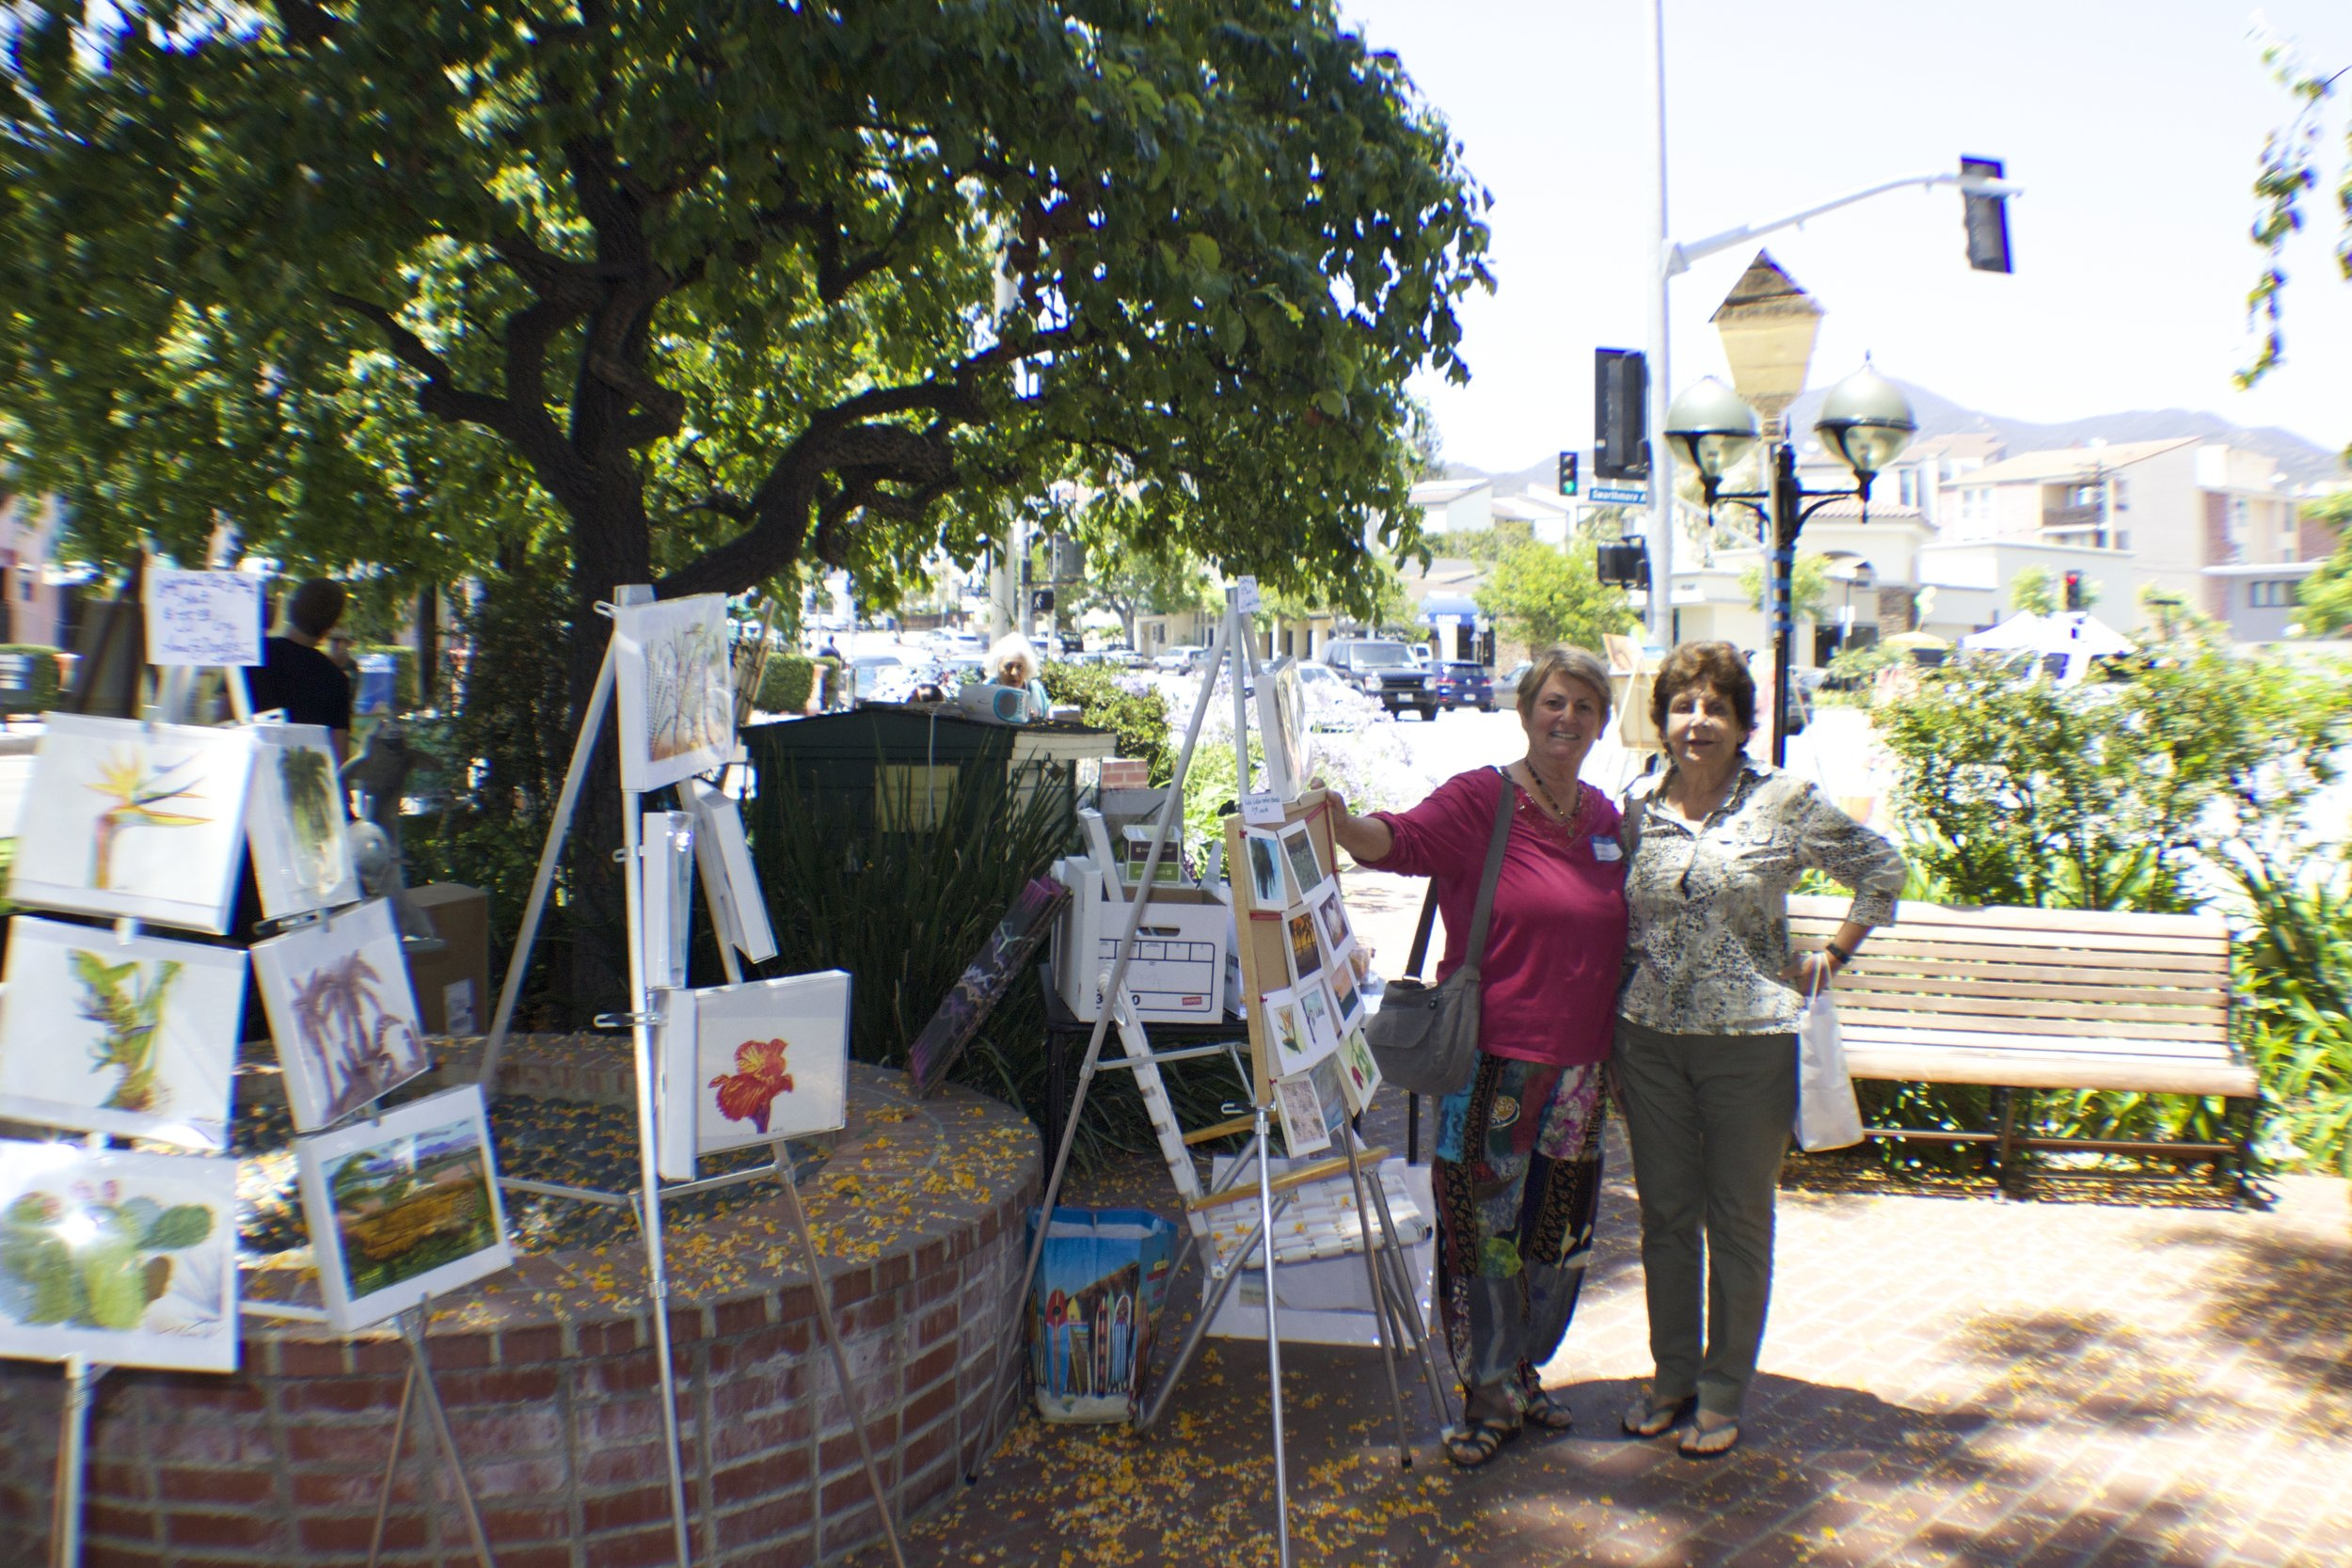 pacific palisades_village green art show 2.jpg